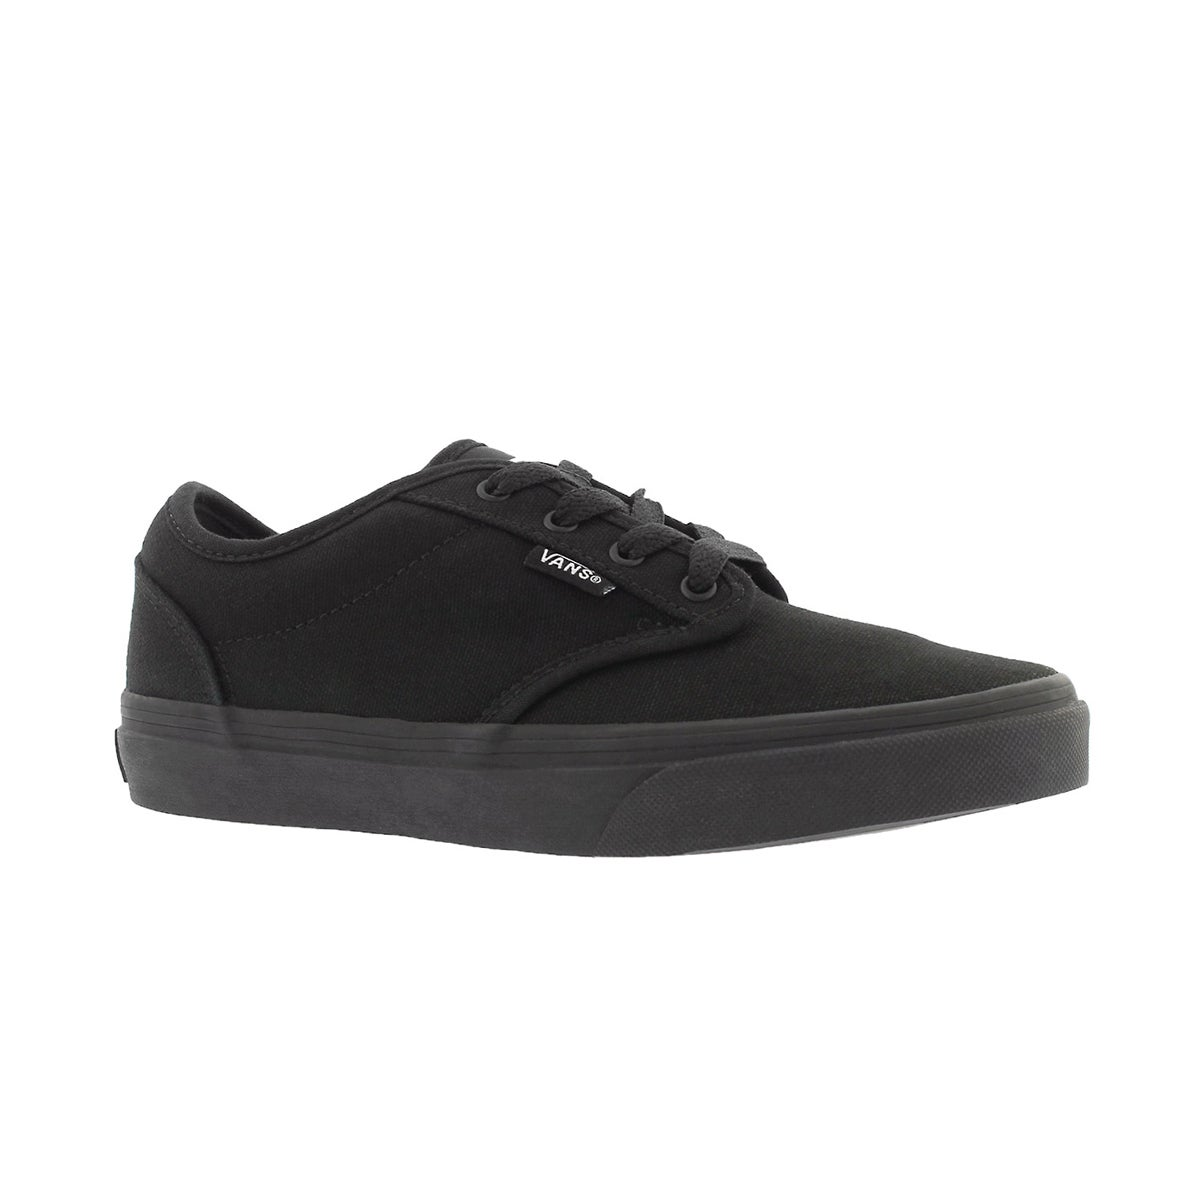 Boys' ATWOOD black canvas lace up sneaker